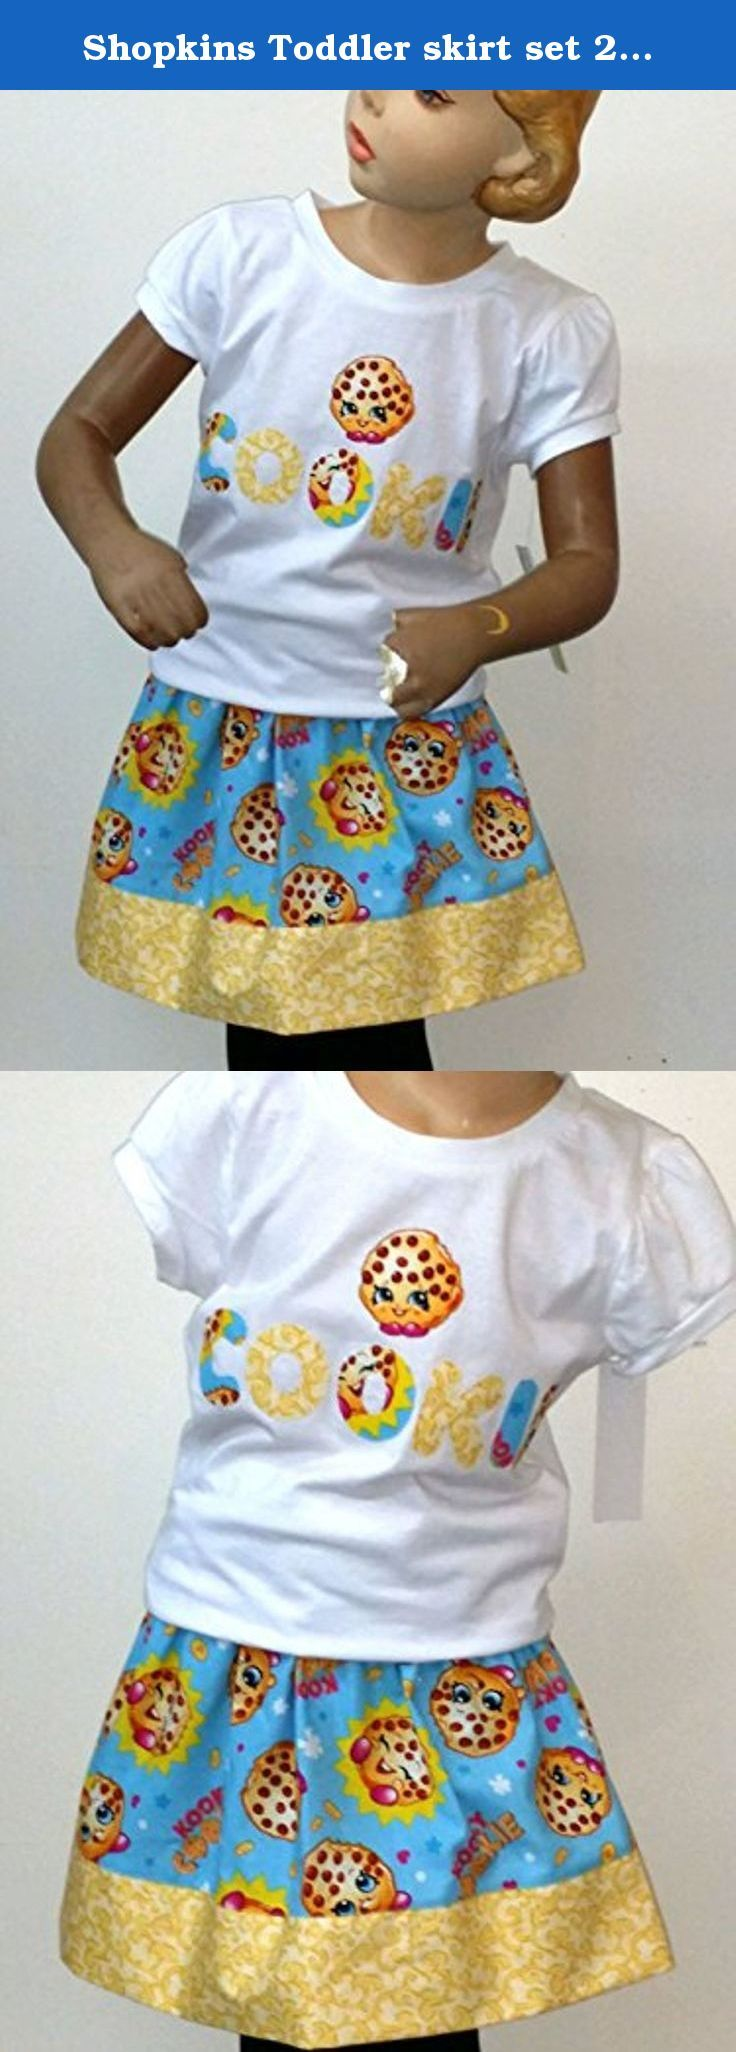 Shopkins Toddler skirt set 2 piece Shopkins Party Outfit Girls Shopkins Party size 6. One-of-a kind SHOPKINS 2-piece outfit, is prefect for the Birthday. Set included short sleeves white shirt with matching elastic waist skirt with hand cut applique in the front of the shirt. Applique was sewn down for durability. YOUR BUSINESS IS VERY IMPORTANT TO US PLEASE BEFORE ANY BAD REVIEW COMMUNICATE WITH ME AND WE CAN WORK THINGS OUT FEEL, FREE TO MESSAGE ME ANYTIME IF YOU HAVE ANY QUESTION OR...